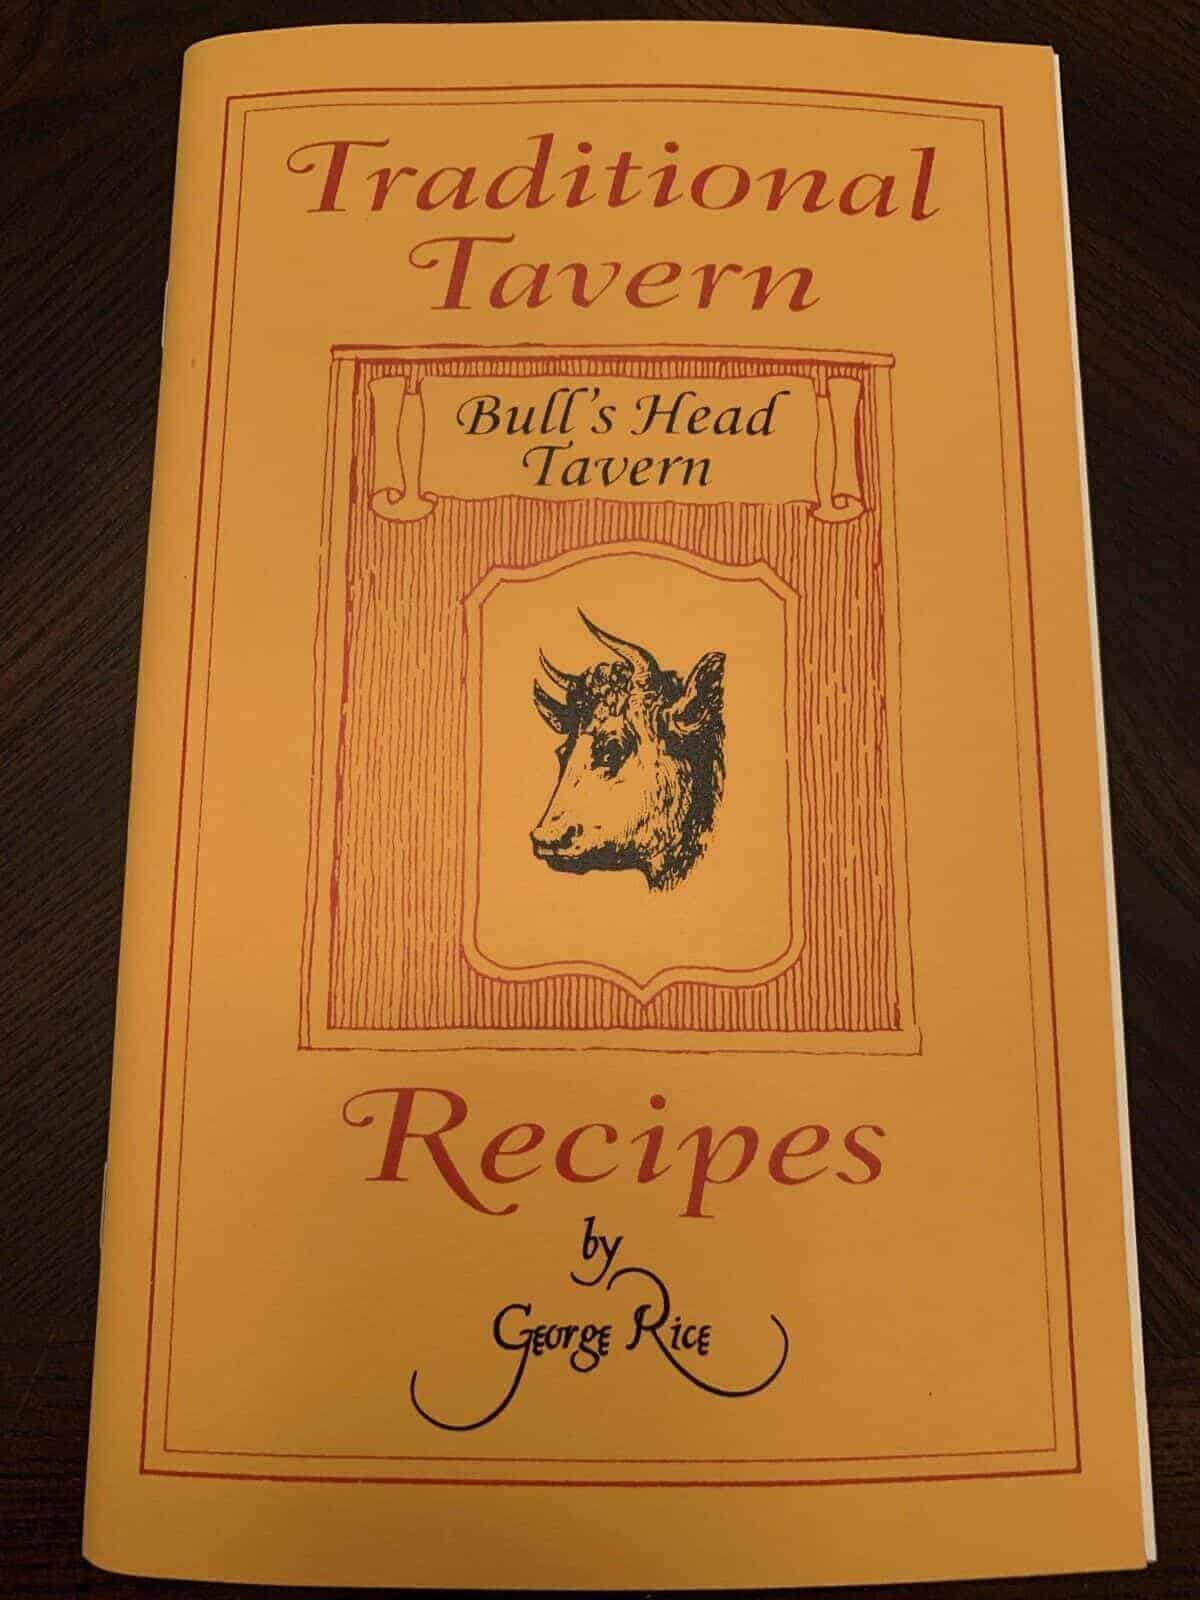 Traditional Tavern Recipes